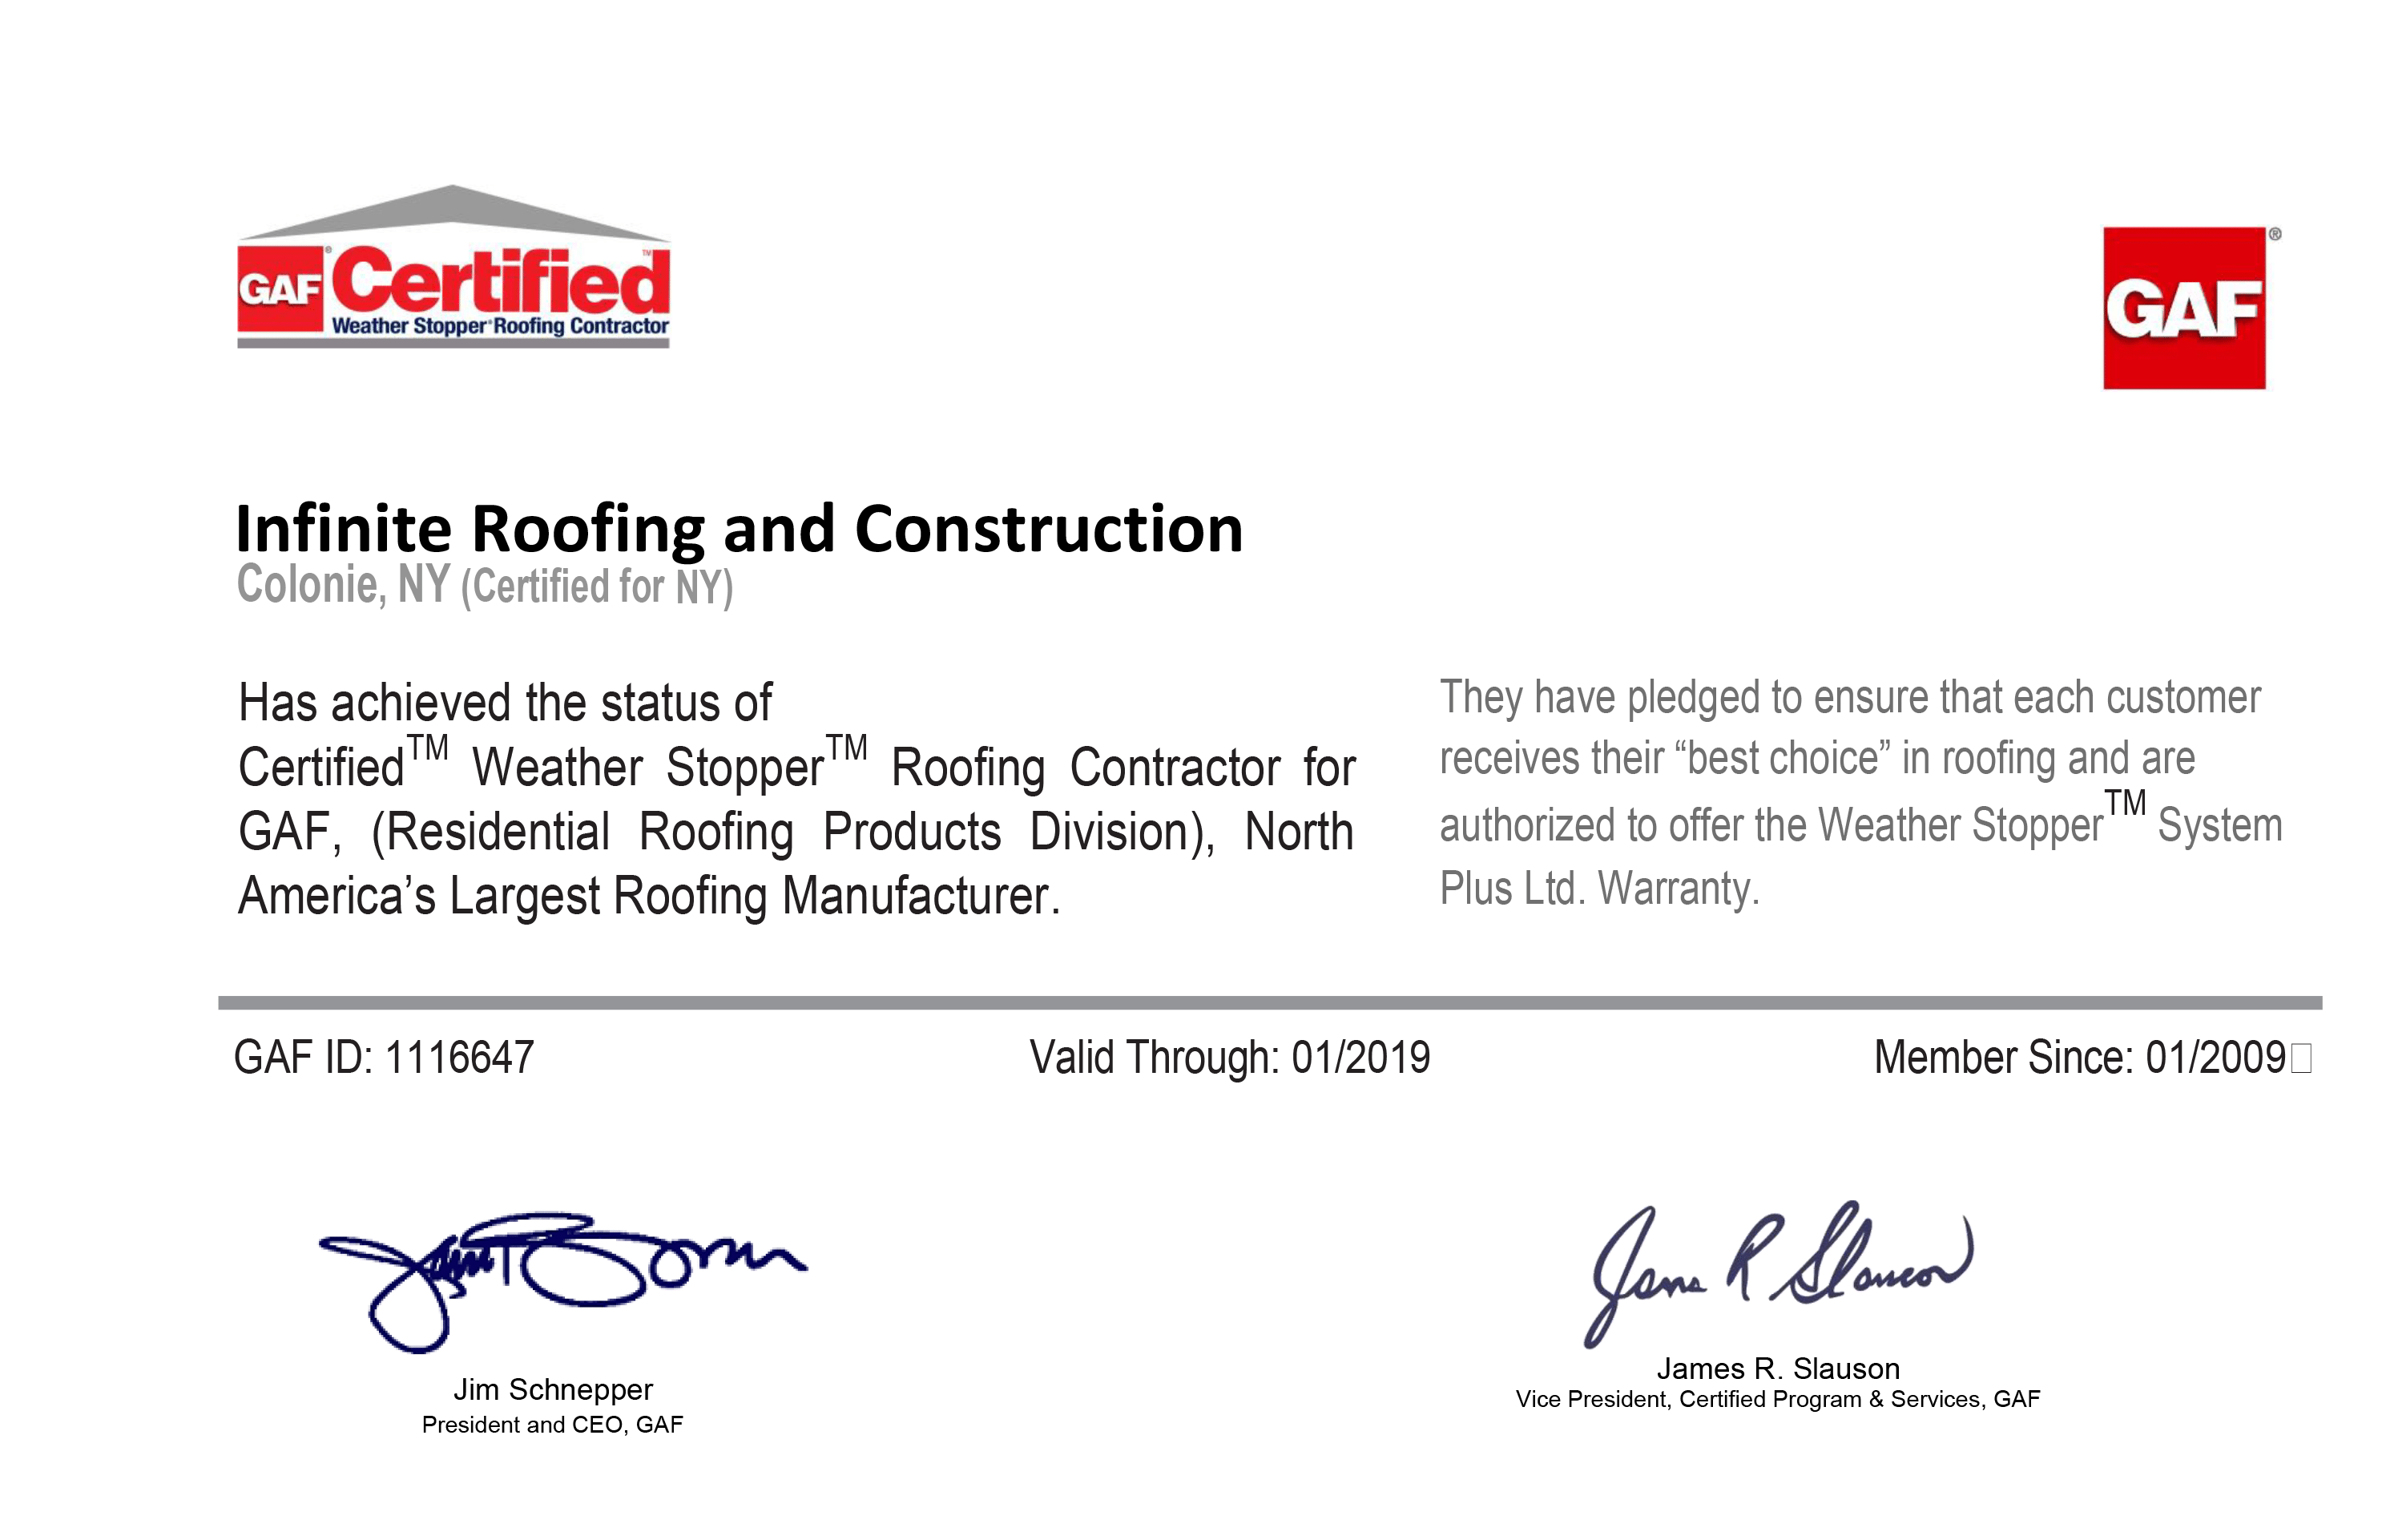 Copy of Infinite Roofing & Construction GAF Certification